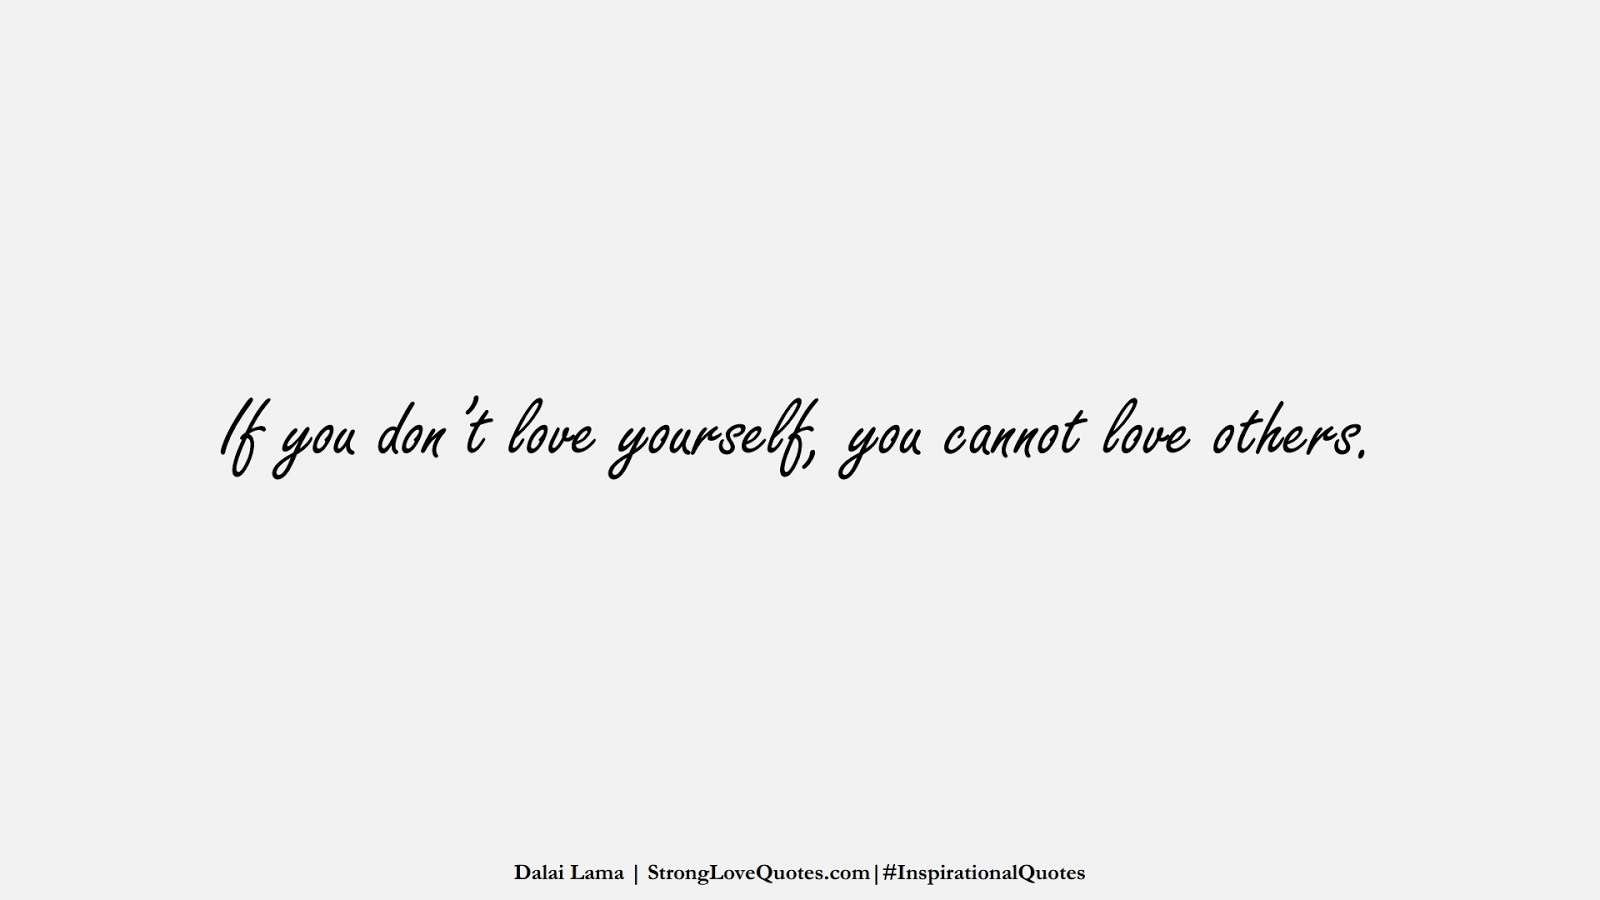 If you don't love yourself, you cannot love others. (Dalai Lama);  #InspirationalQuotes